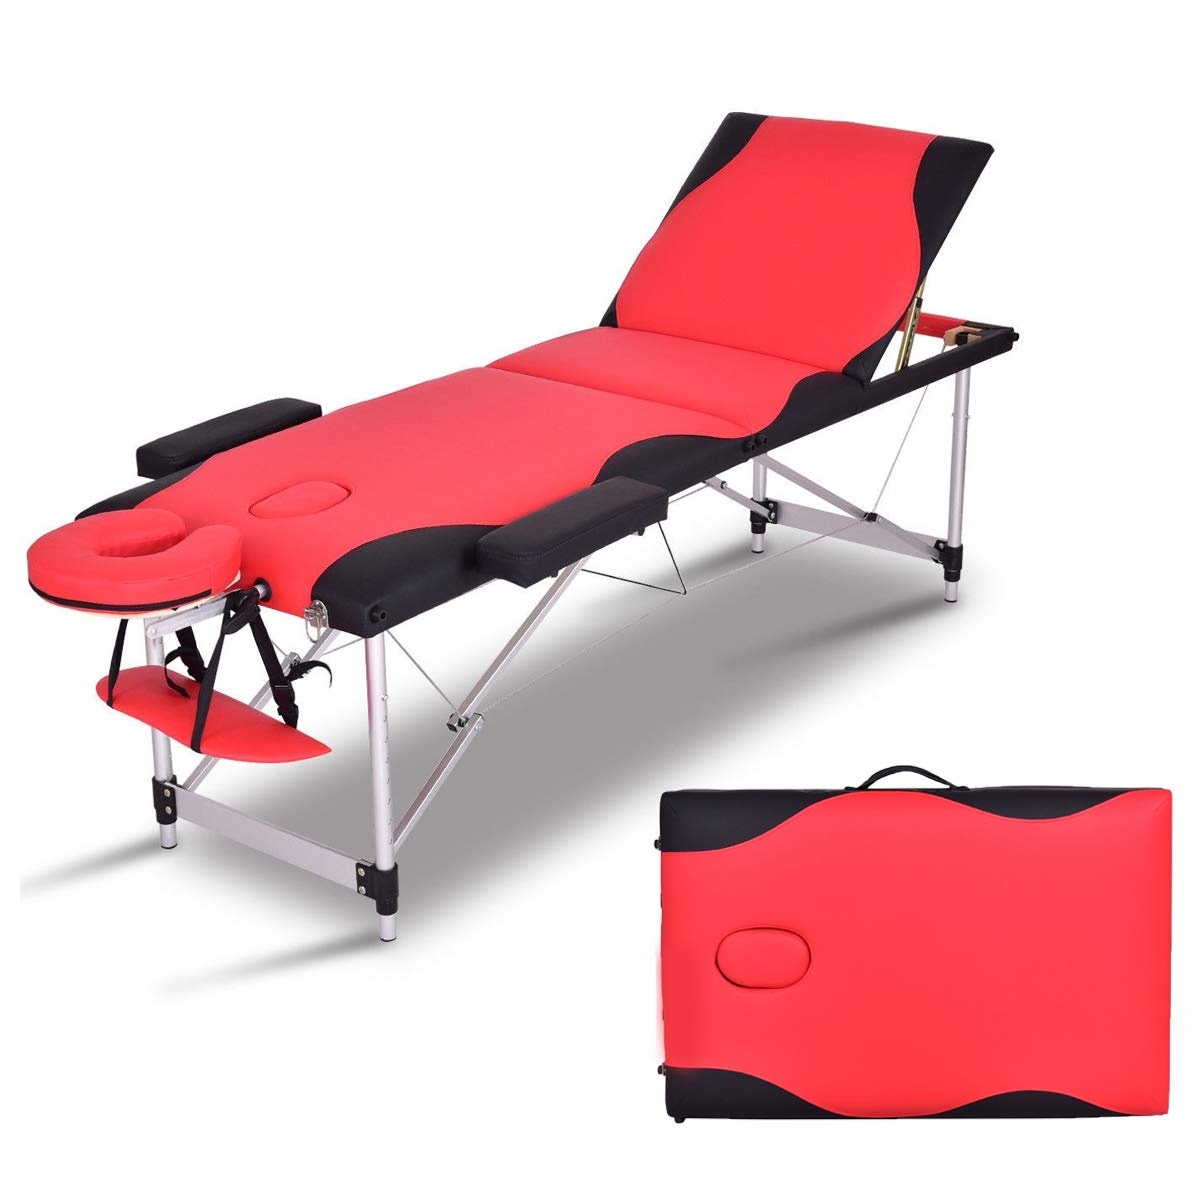 84 L Folding Massage Table Massage Bed Professional Spa Bed Carry Case Portable Facial Salon Tattoo Bed Red